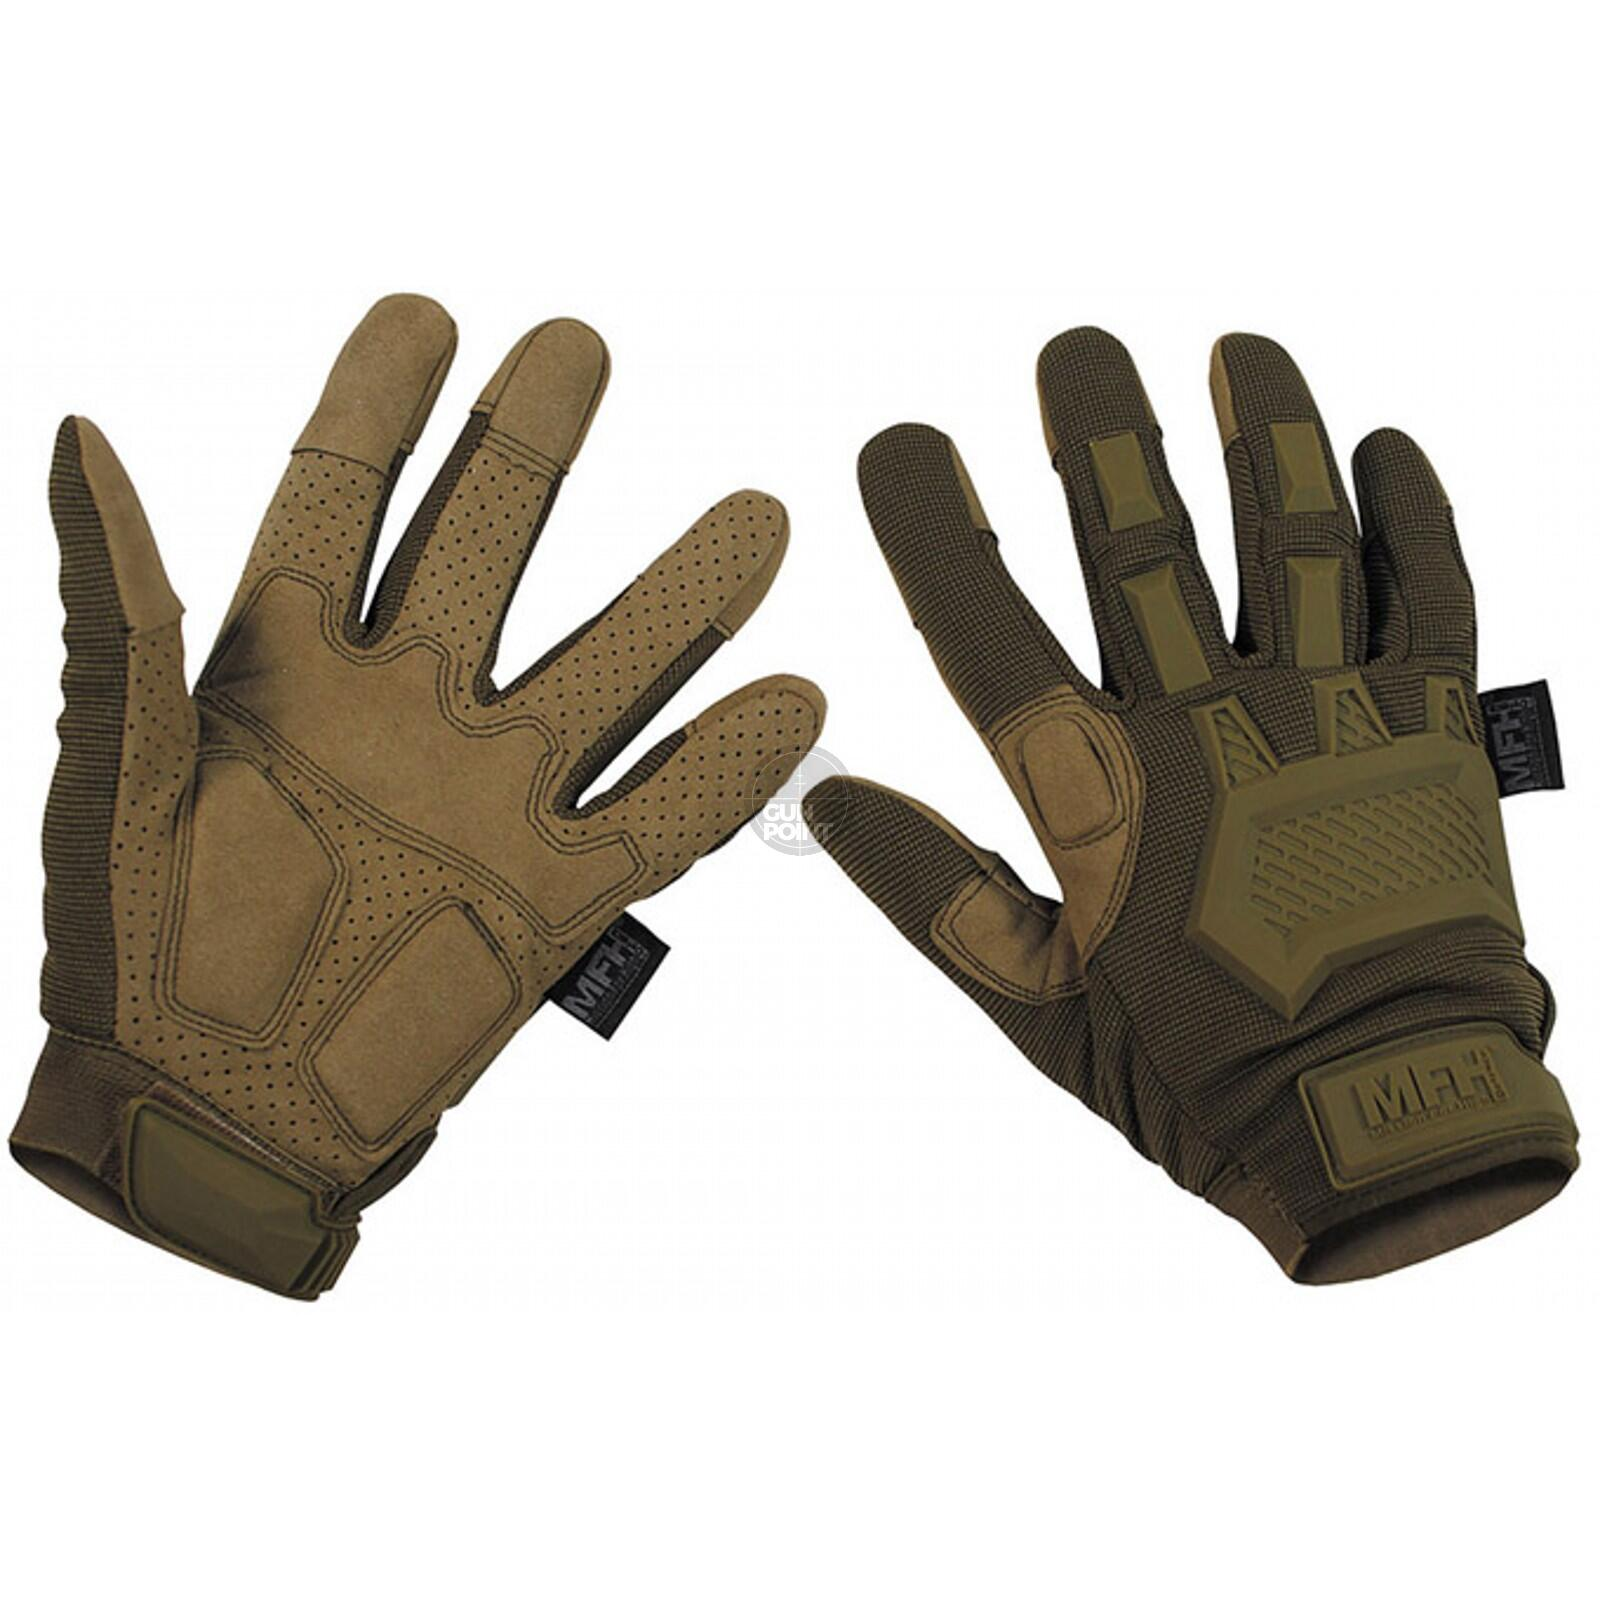 Tactical Handschuhe, Action,coyote tan - Größe: M